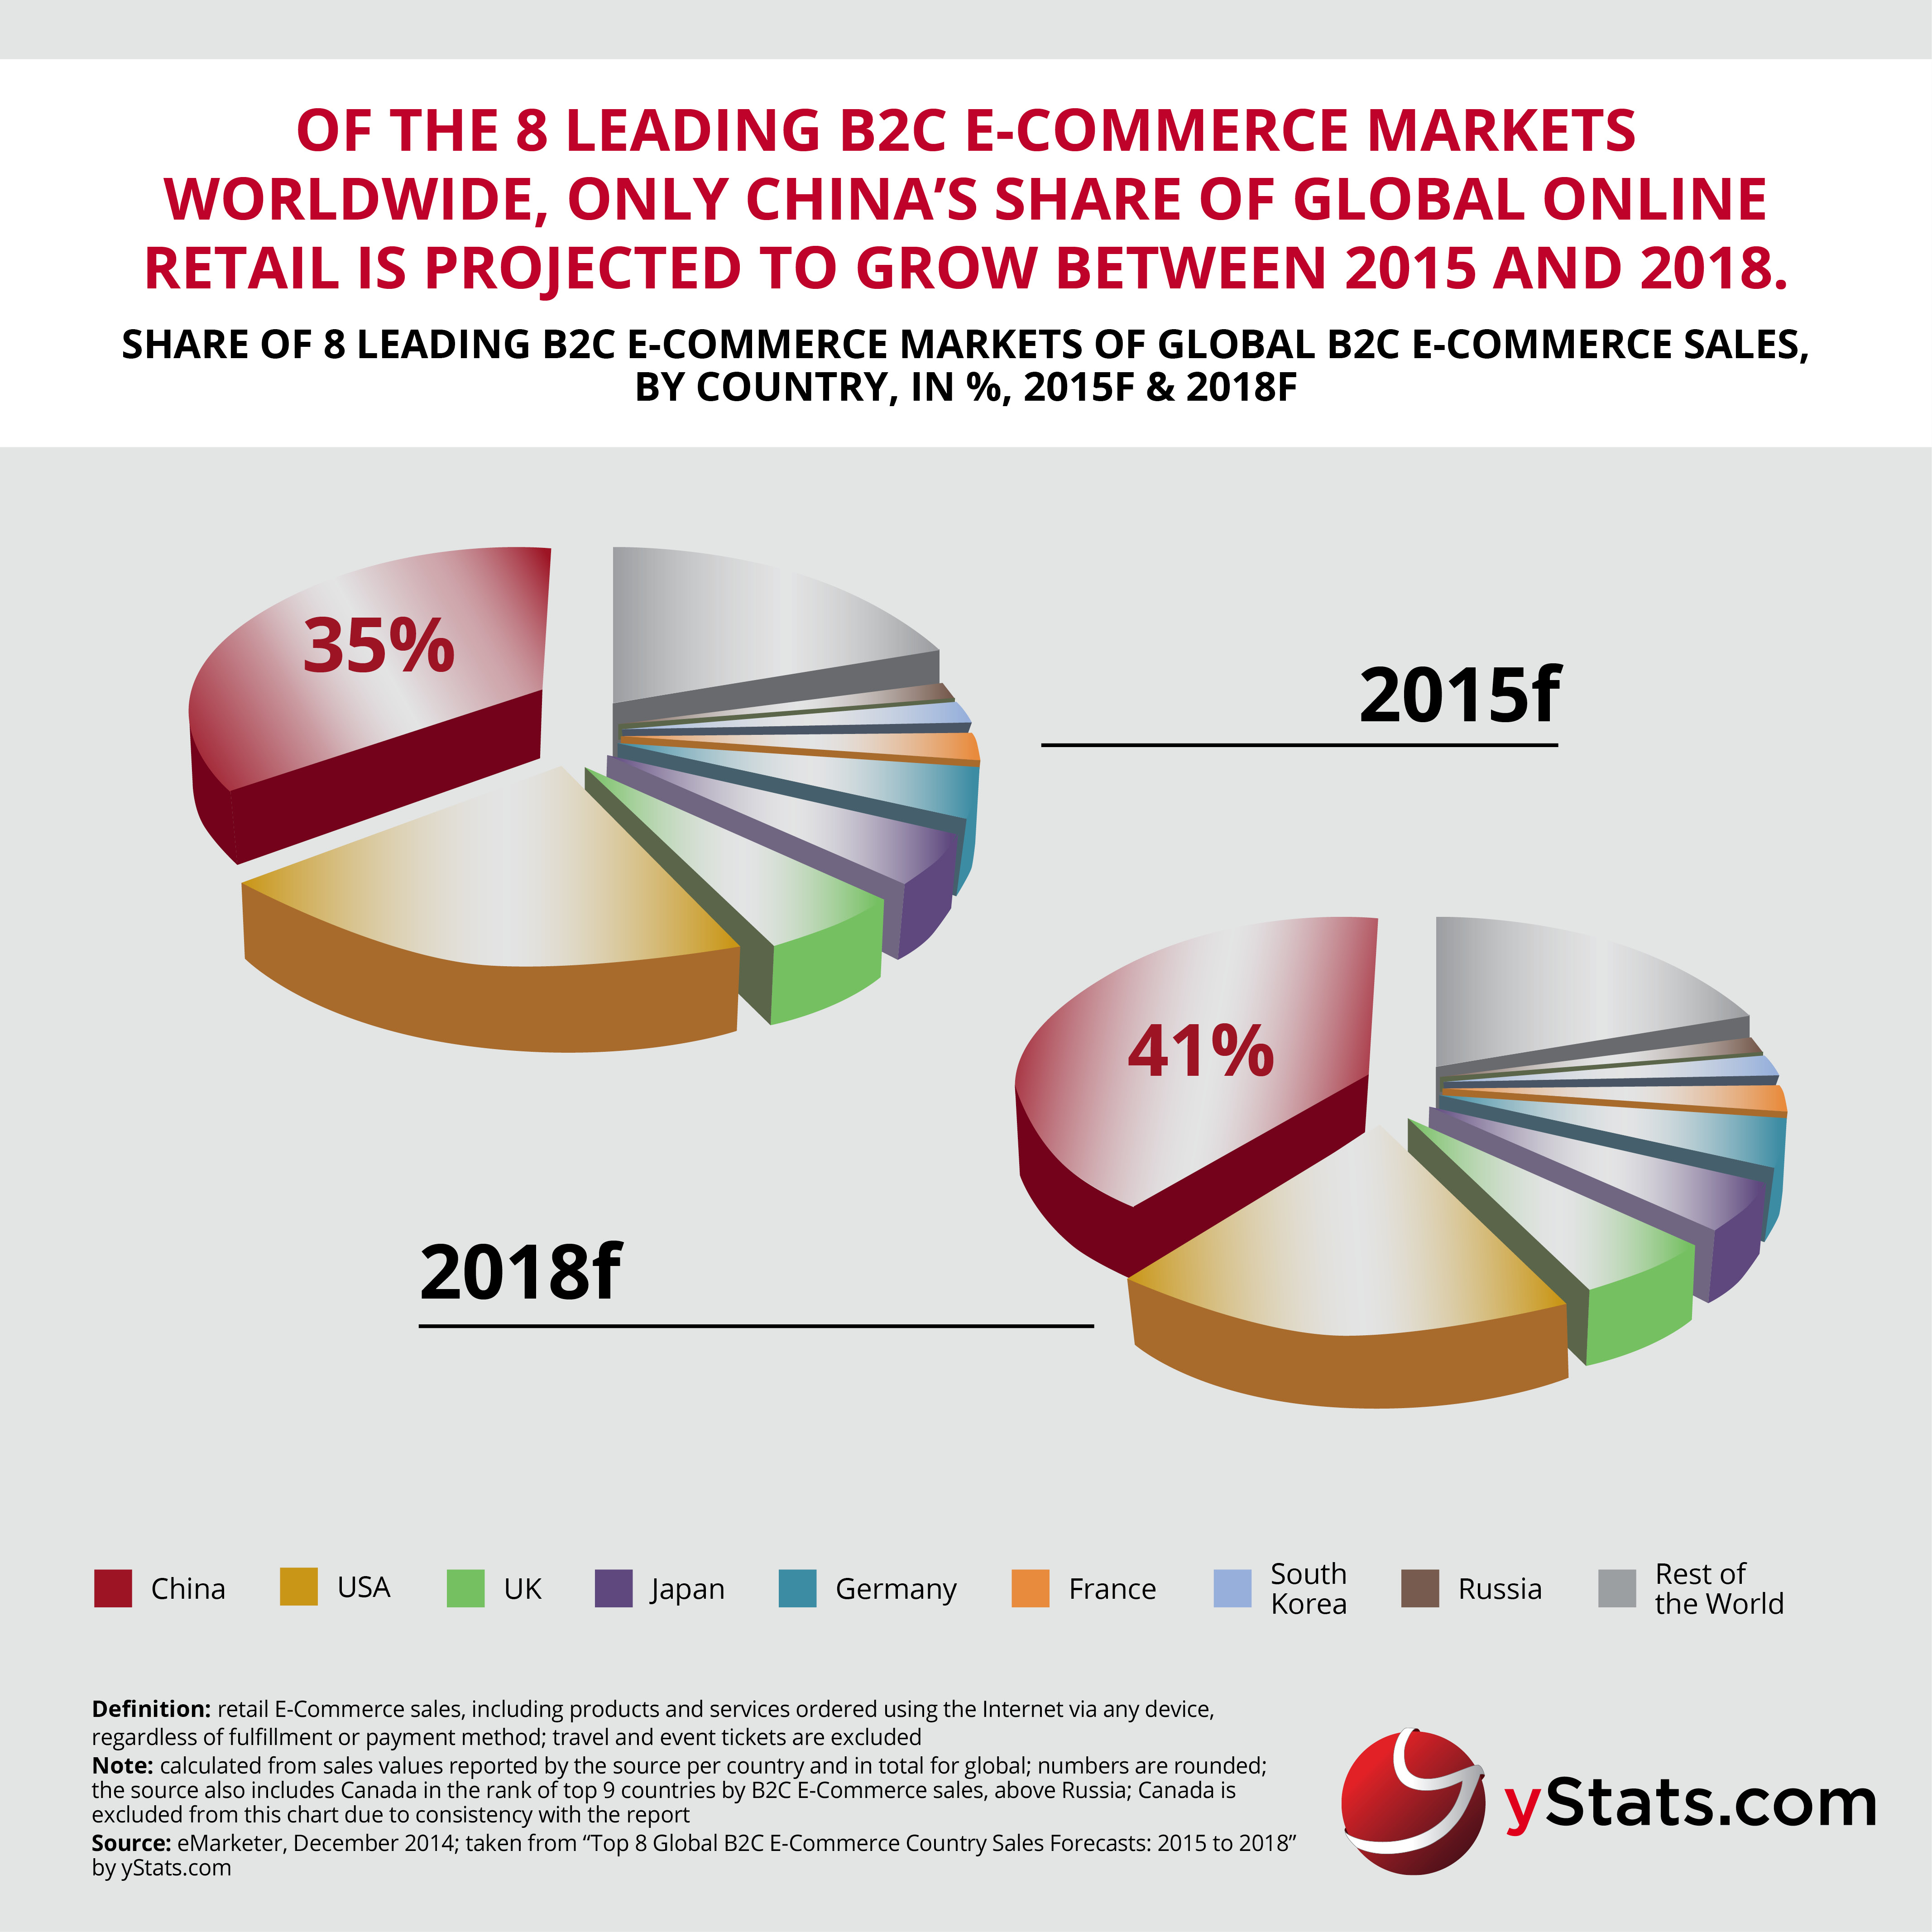 Infographic_Top 8 Global B2C E-Commerce Sales Forecasts 2015 to 2018 (1)